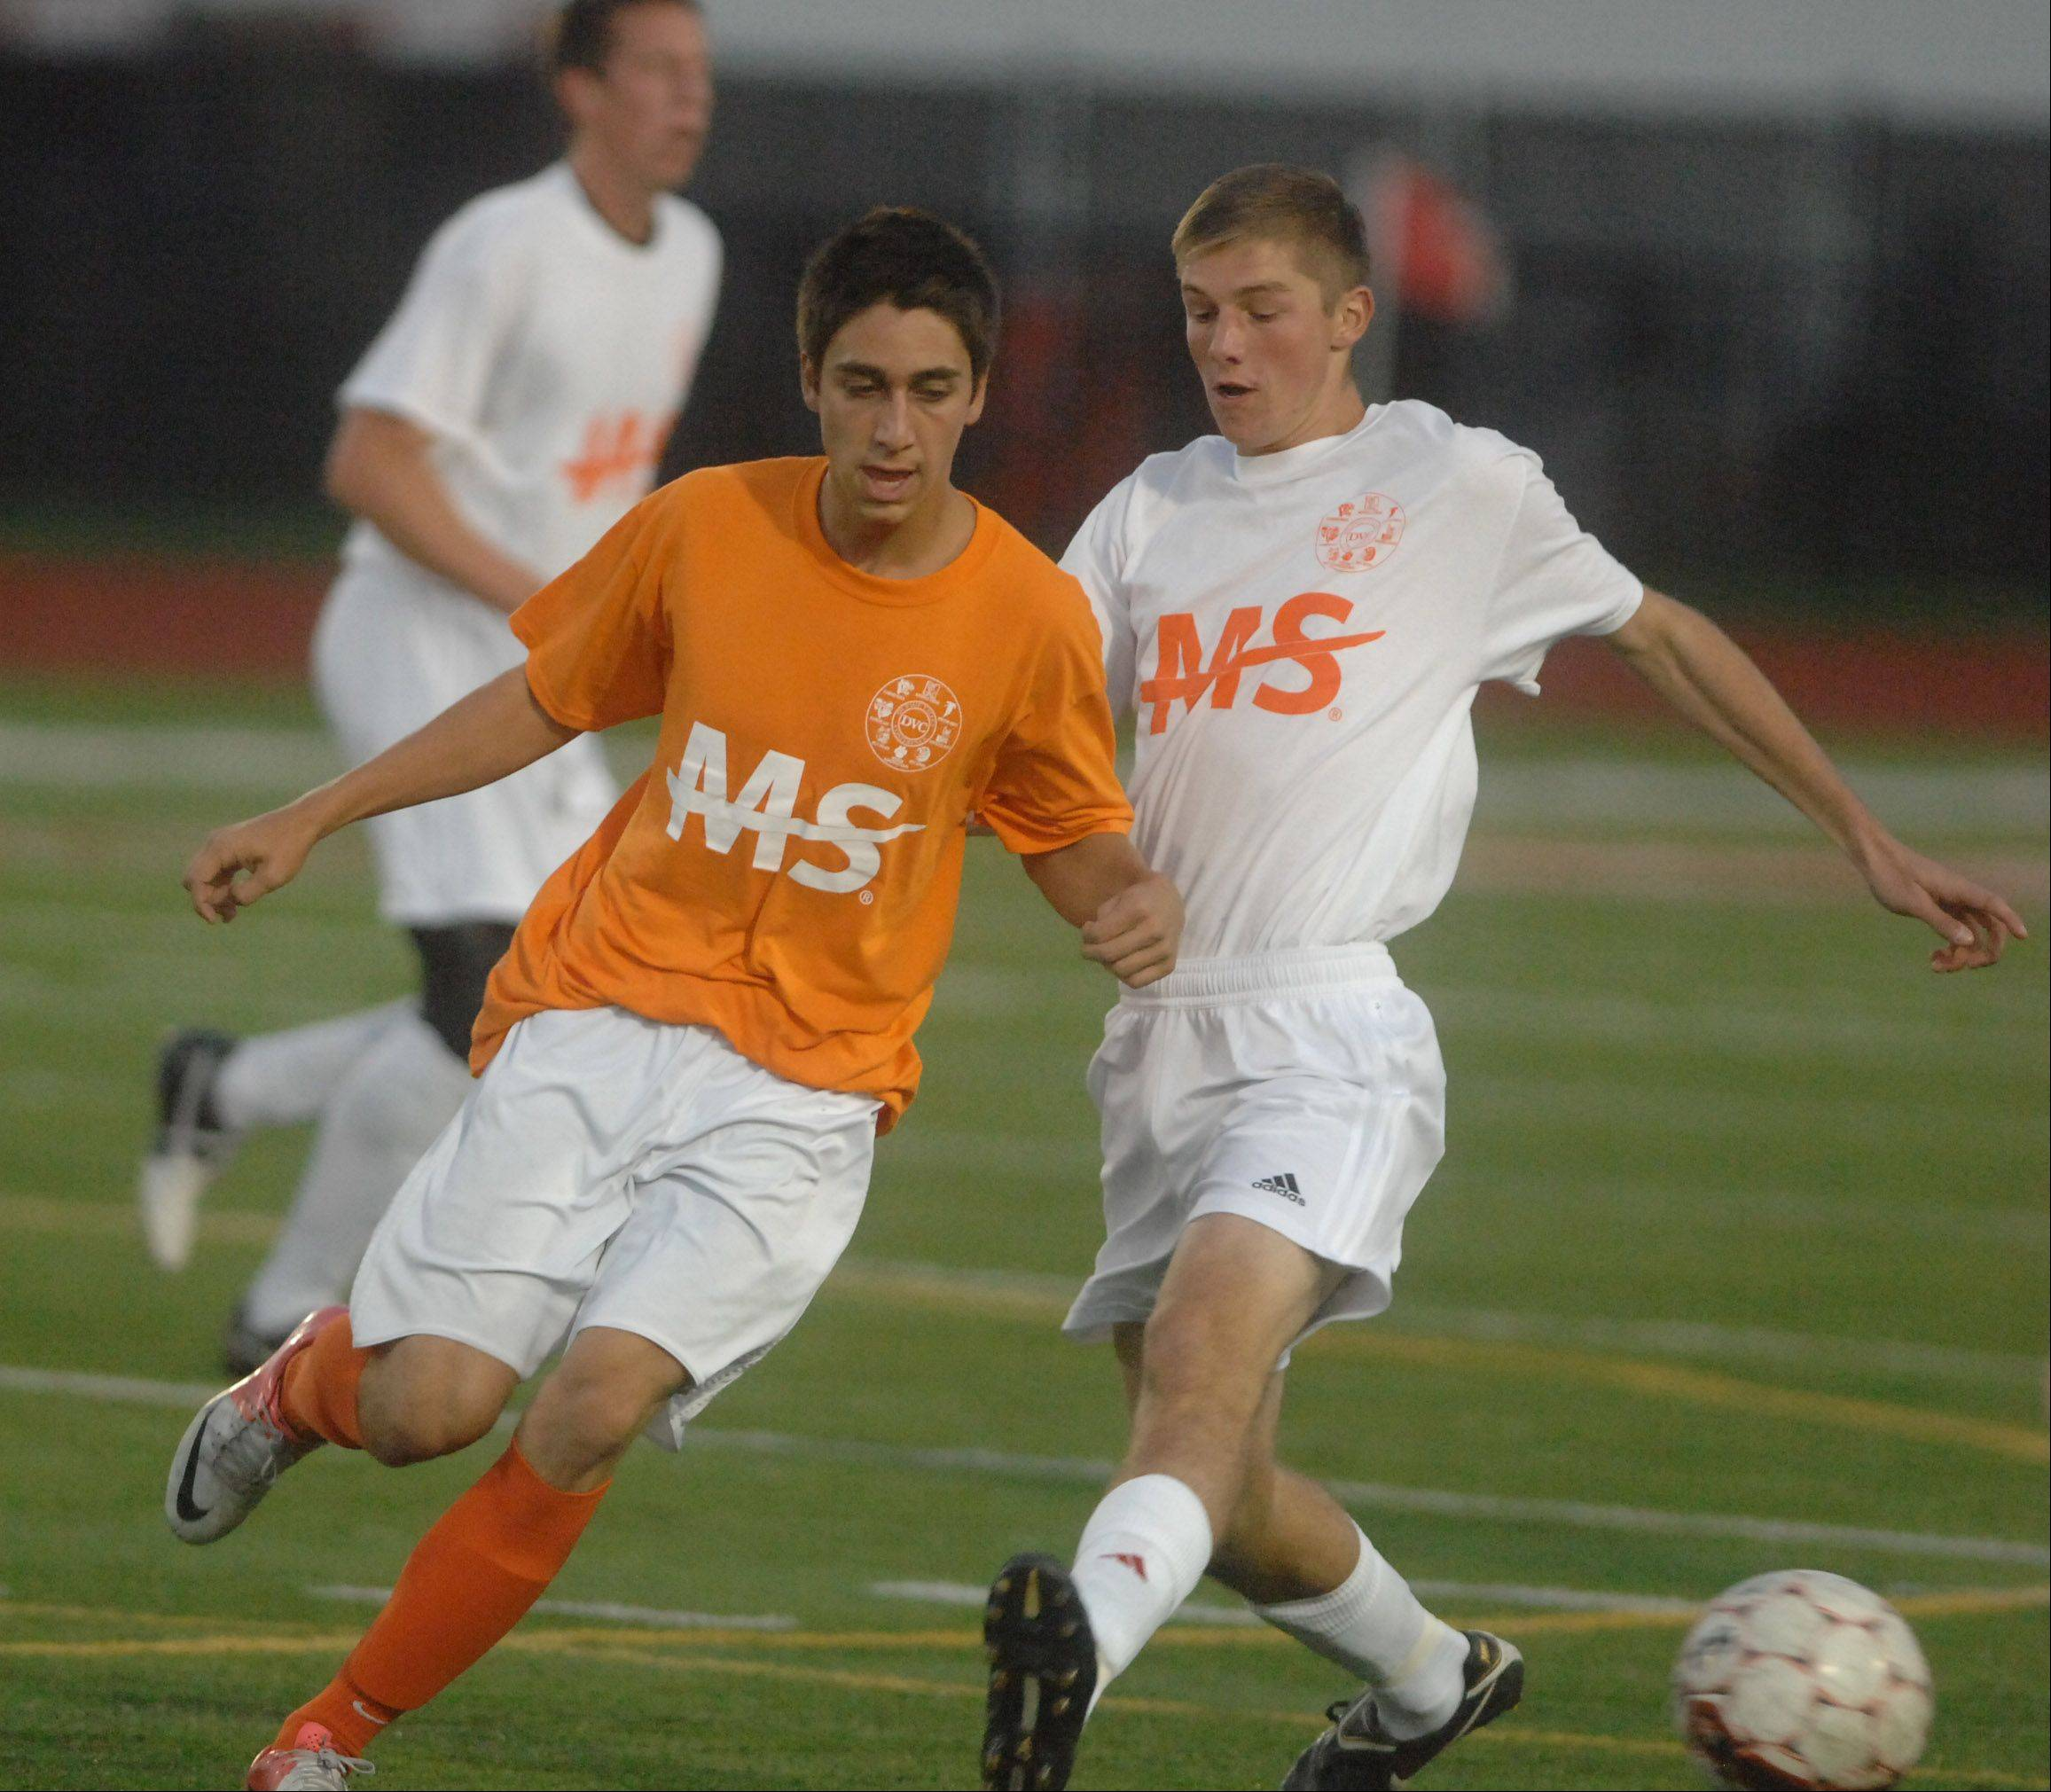 Chris MacClean,left, of Naperville North and Jack Burdett of Naperville Central chase down a ball during the Napervile Central vs. Naperville North boys soccer game in Naperville Tuesday.